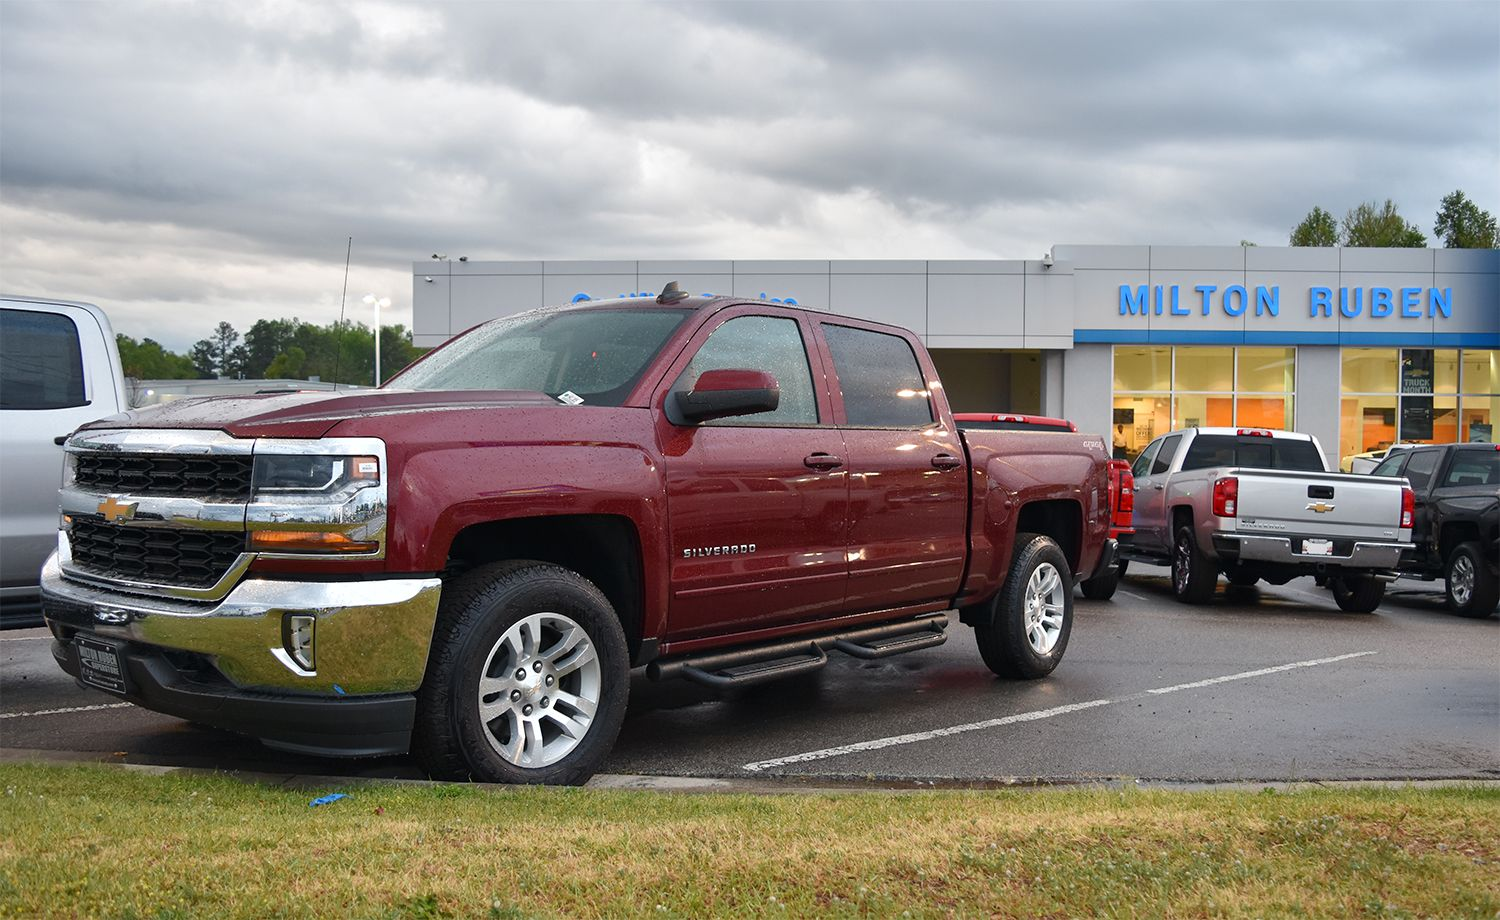 We're proud to have Silverado strength on our lot. Chevy